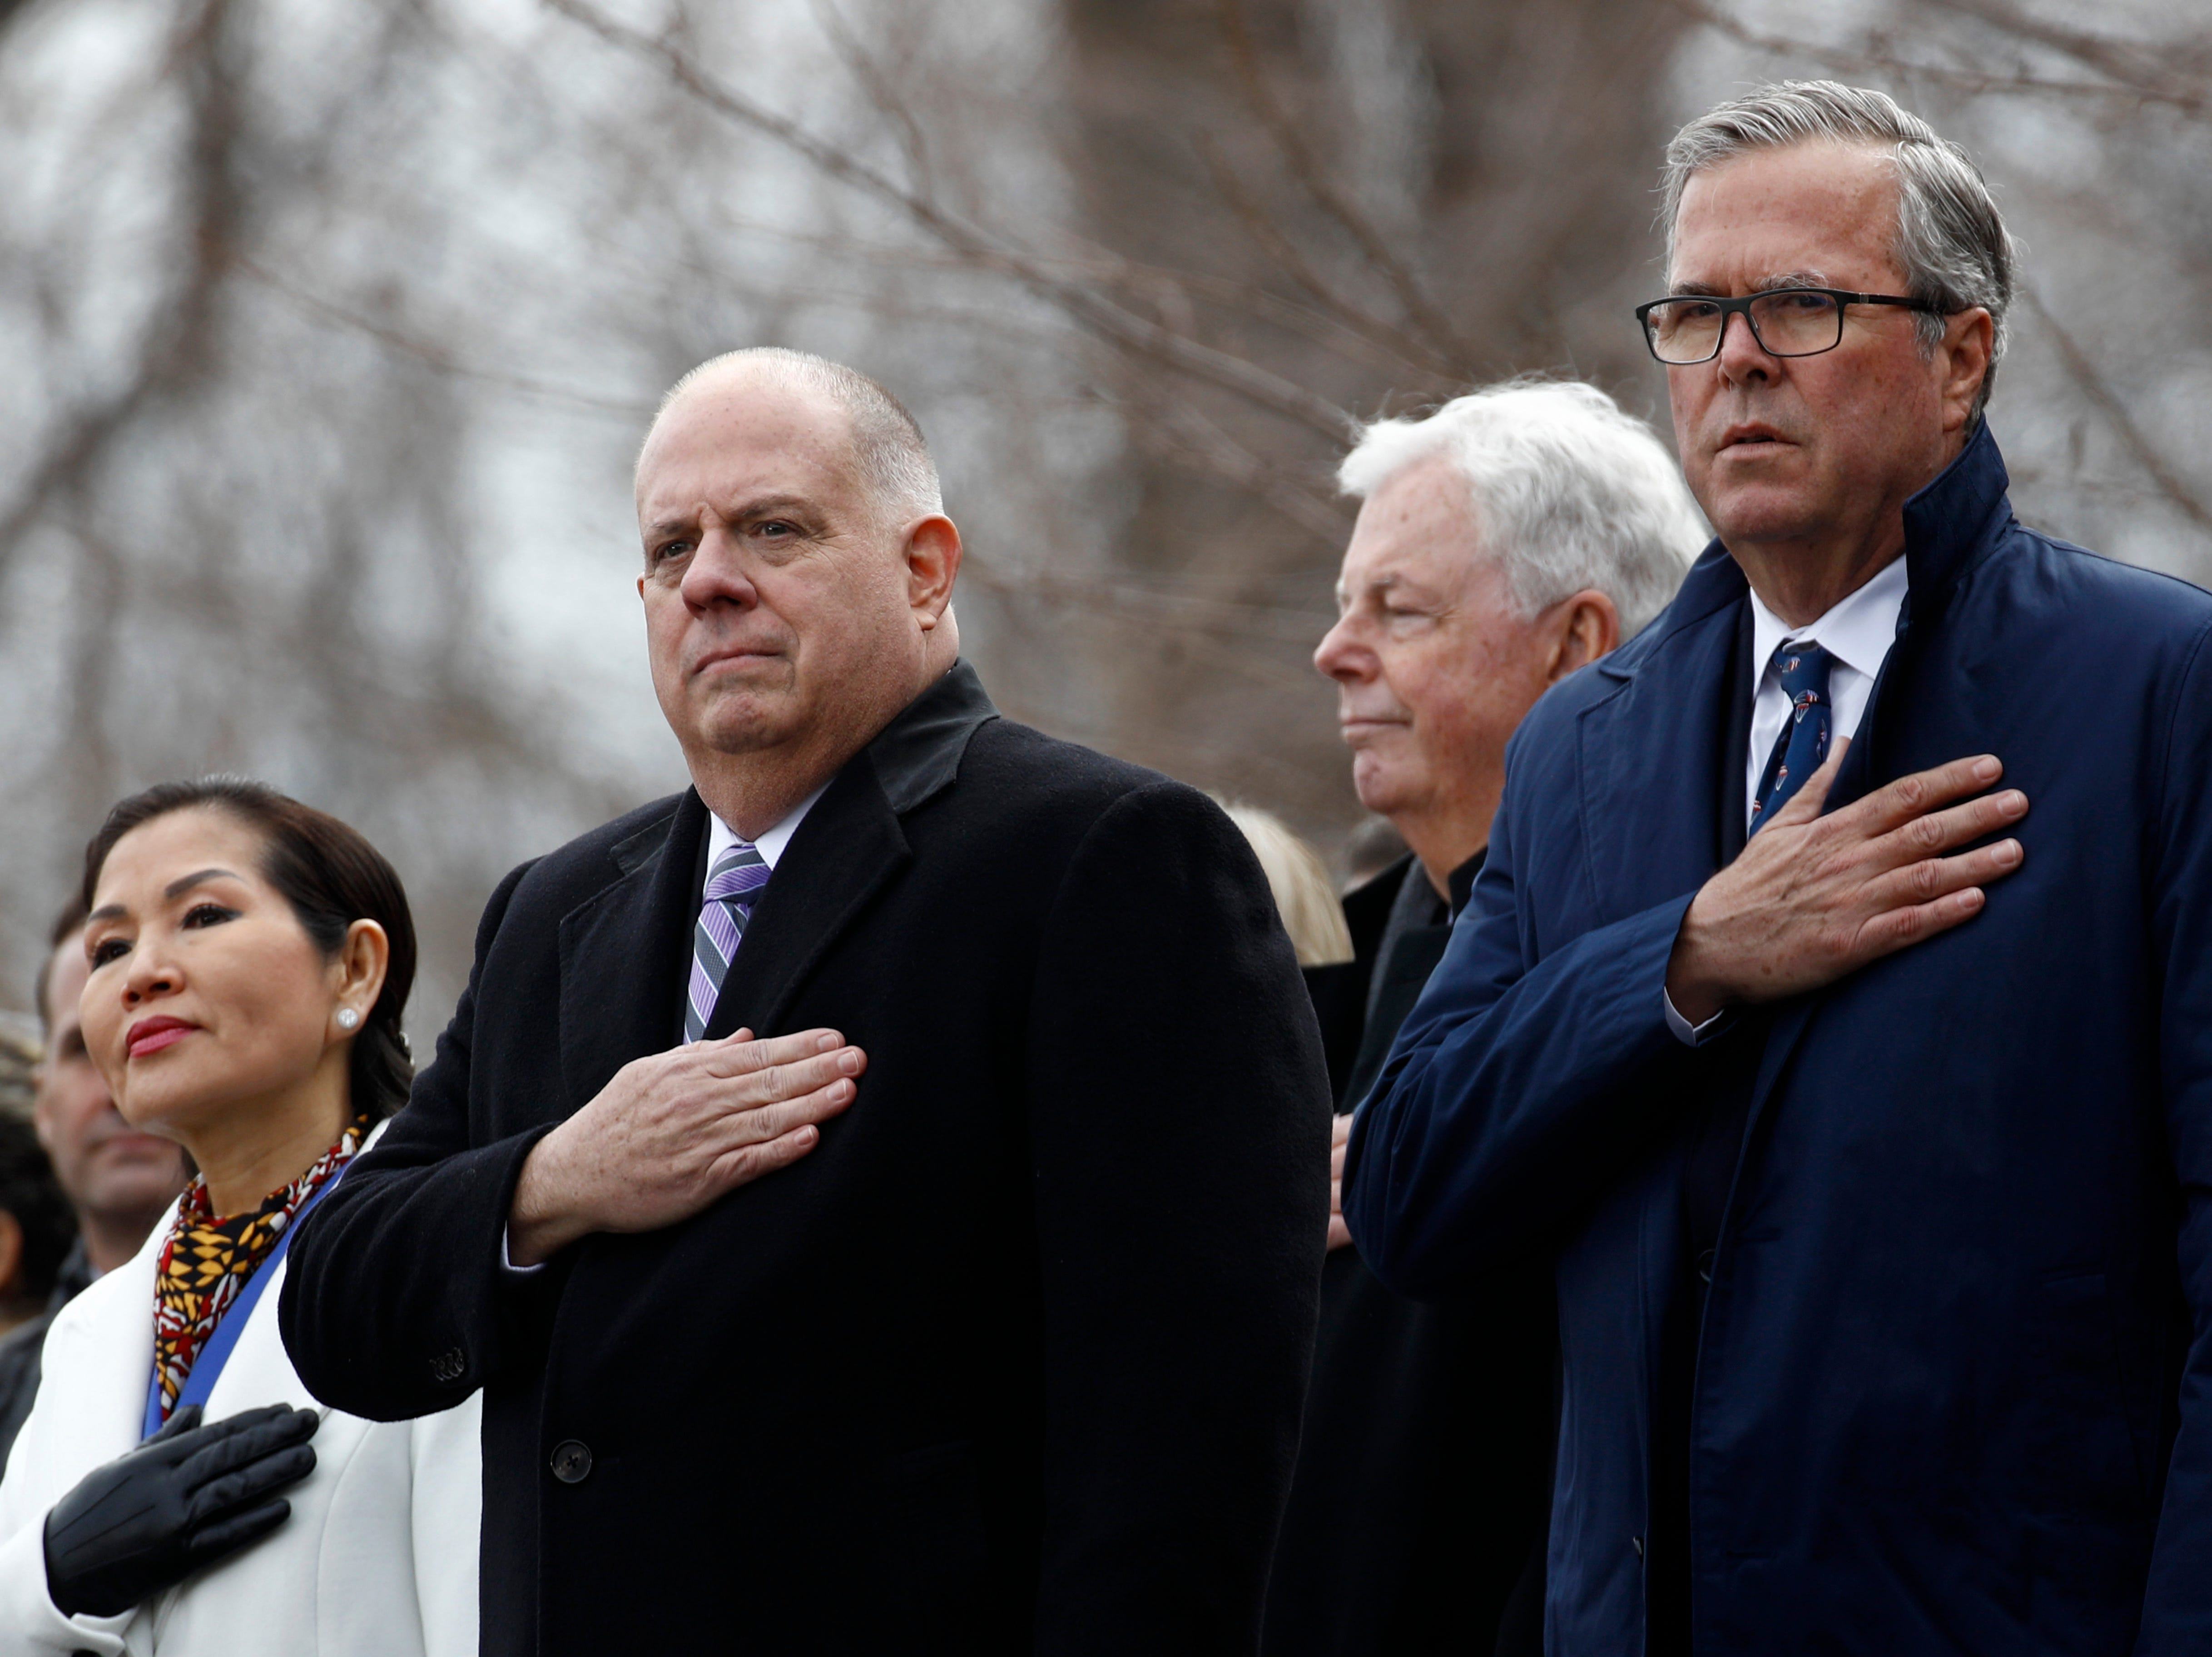 Maryland Gov. Larry Hogan, center, stands between first lady Yumi Hogan, left, and former Florida Gov. Jeb Bush during a rendition of the national anthem at Hogan's inauguration ceremony Wednesday, Jan. 16, 2019, in Annapolis.